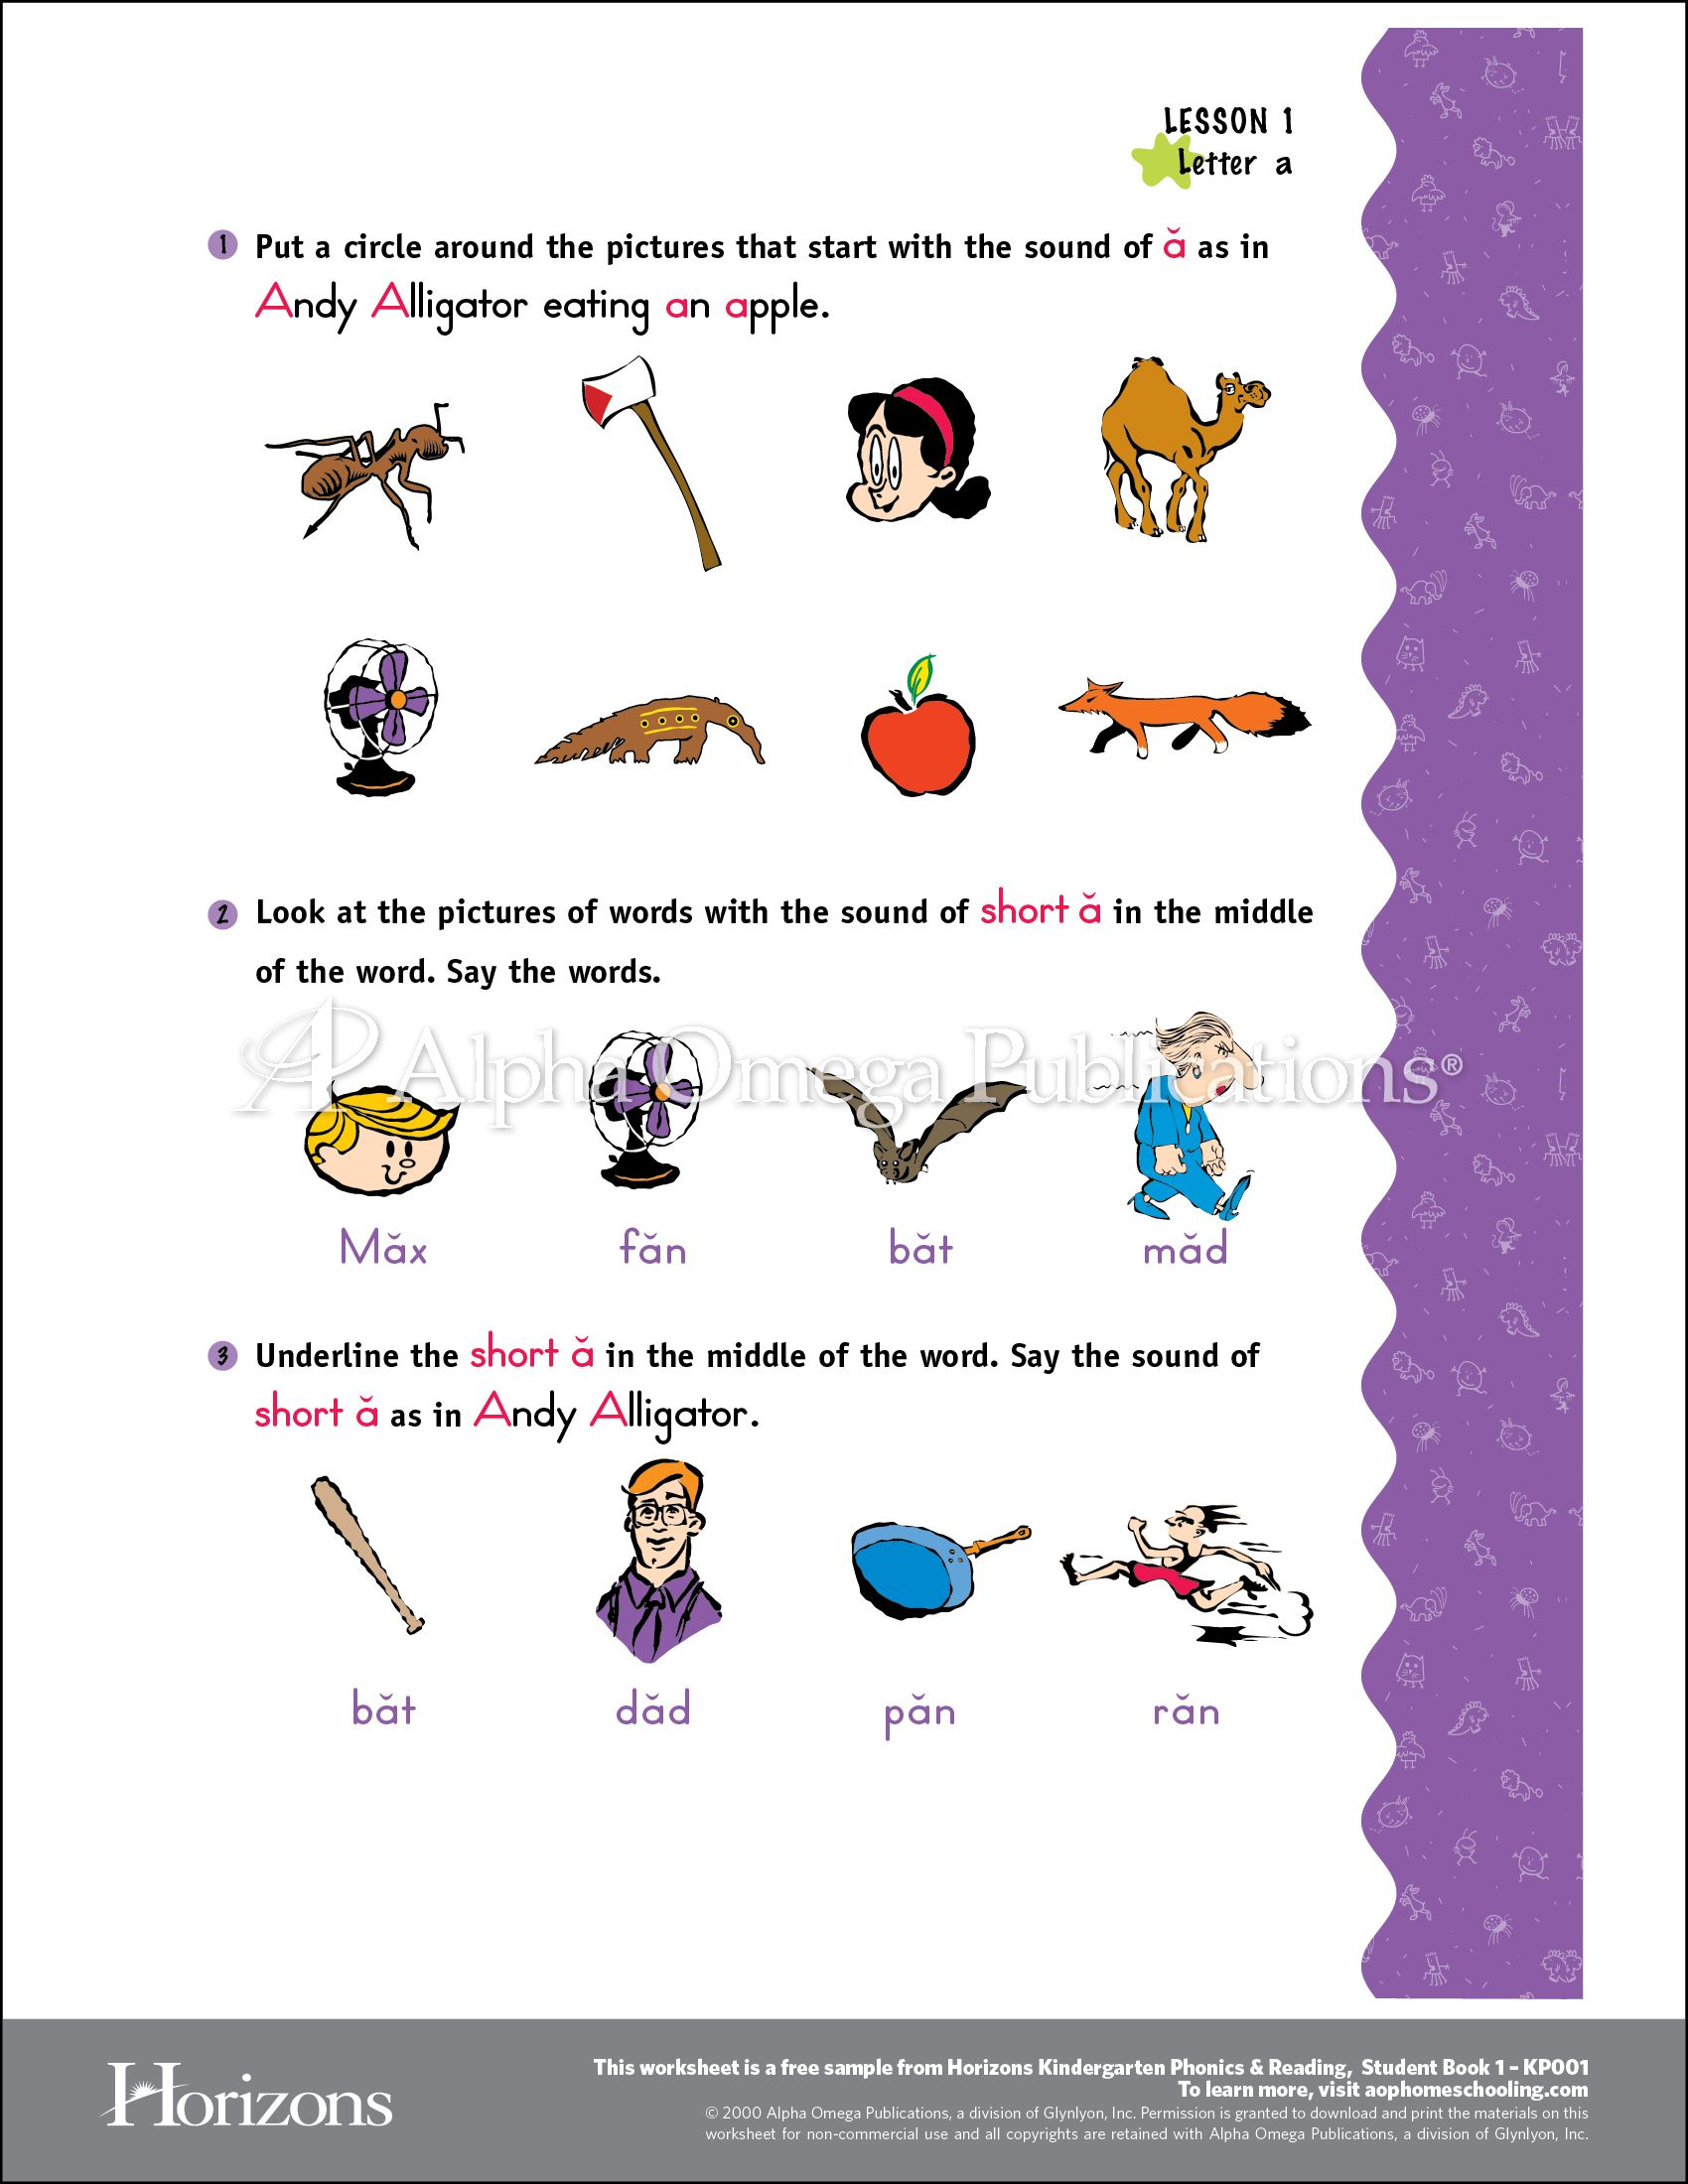 AOP Horizons free printable worksheet sample page download for  #homeschooling from Alpha Omega Publications #